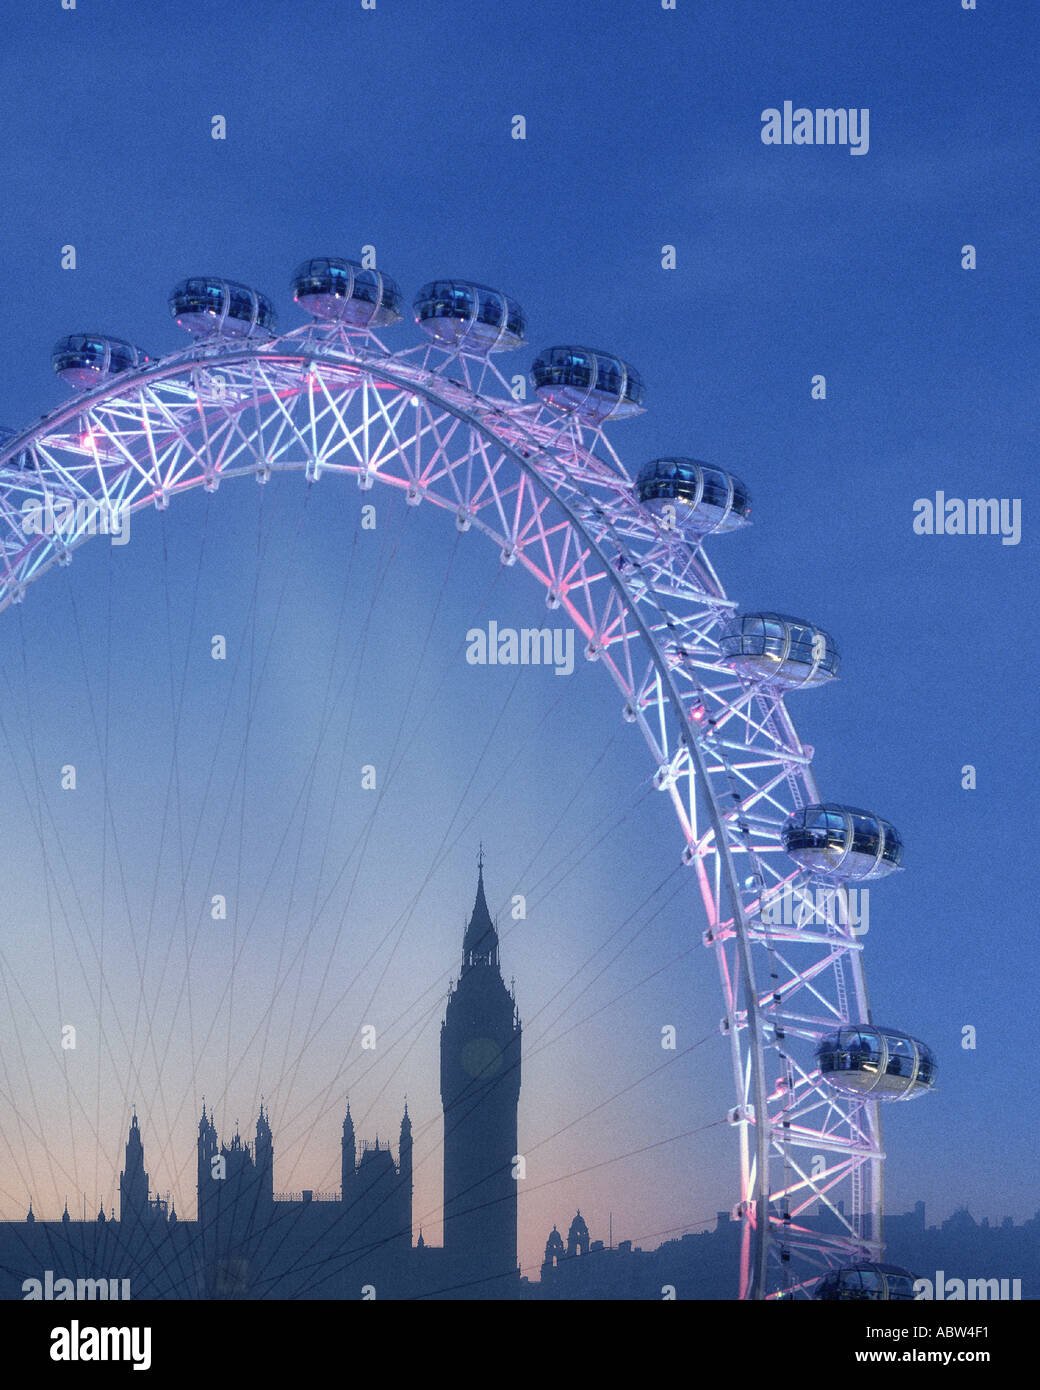 GB - LONDON: The London Eye and Big Ben (Elizabeth Tower) by night - Stock Image